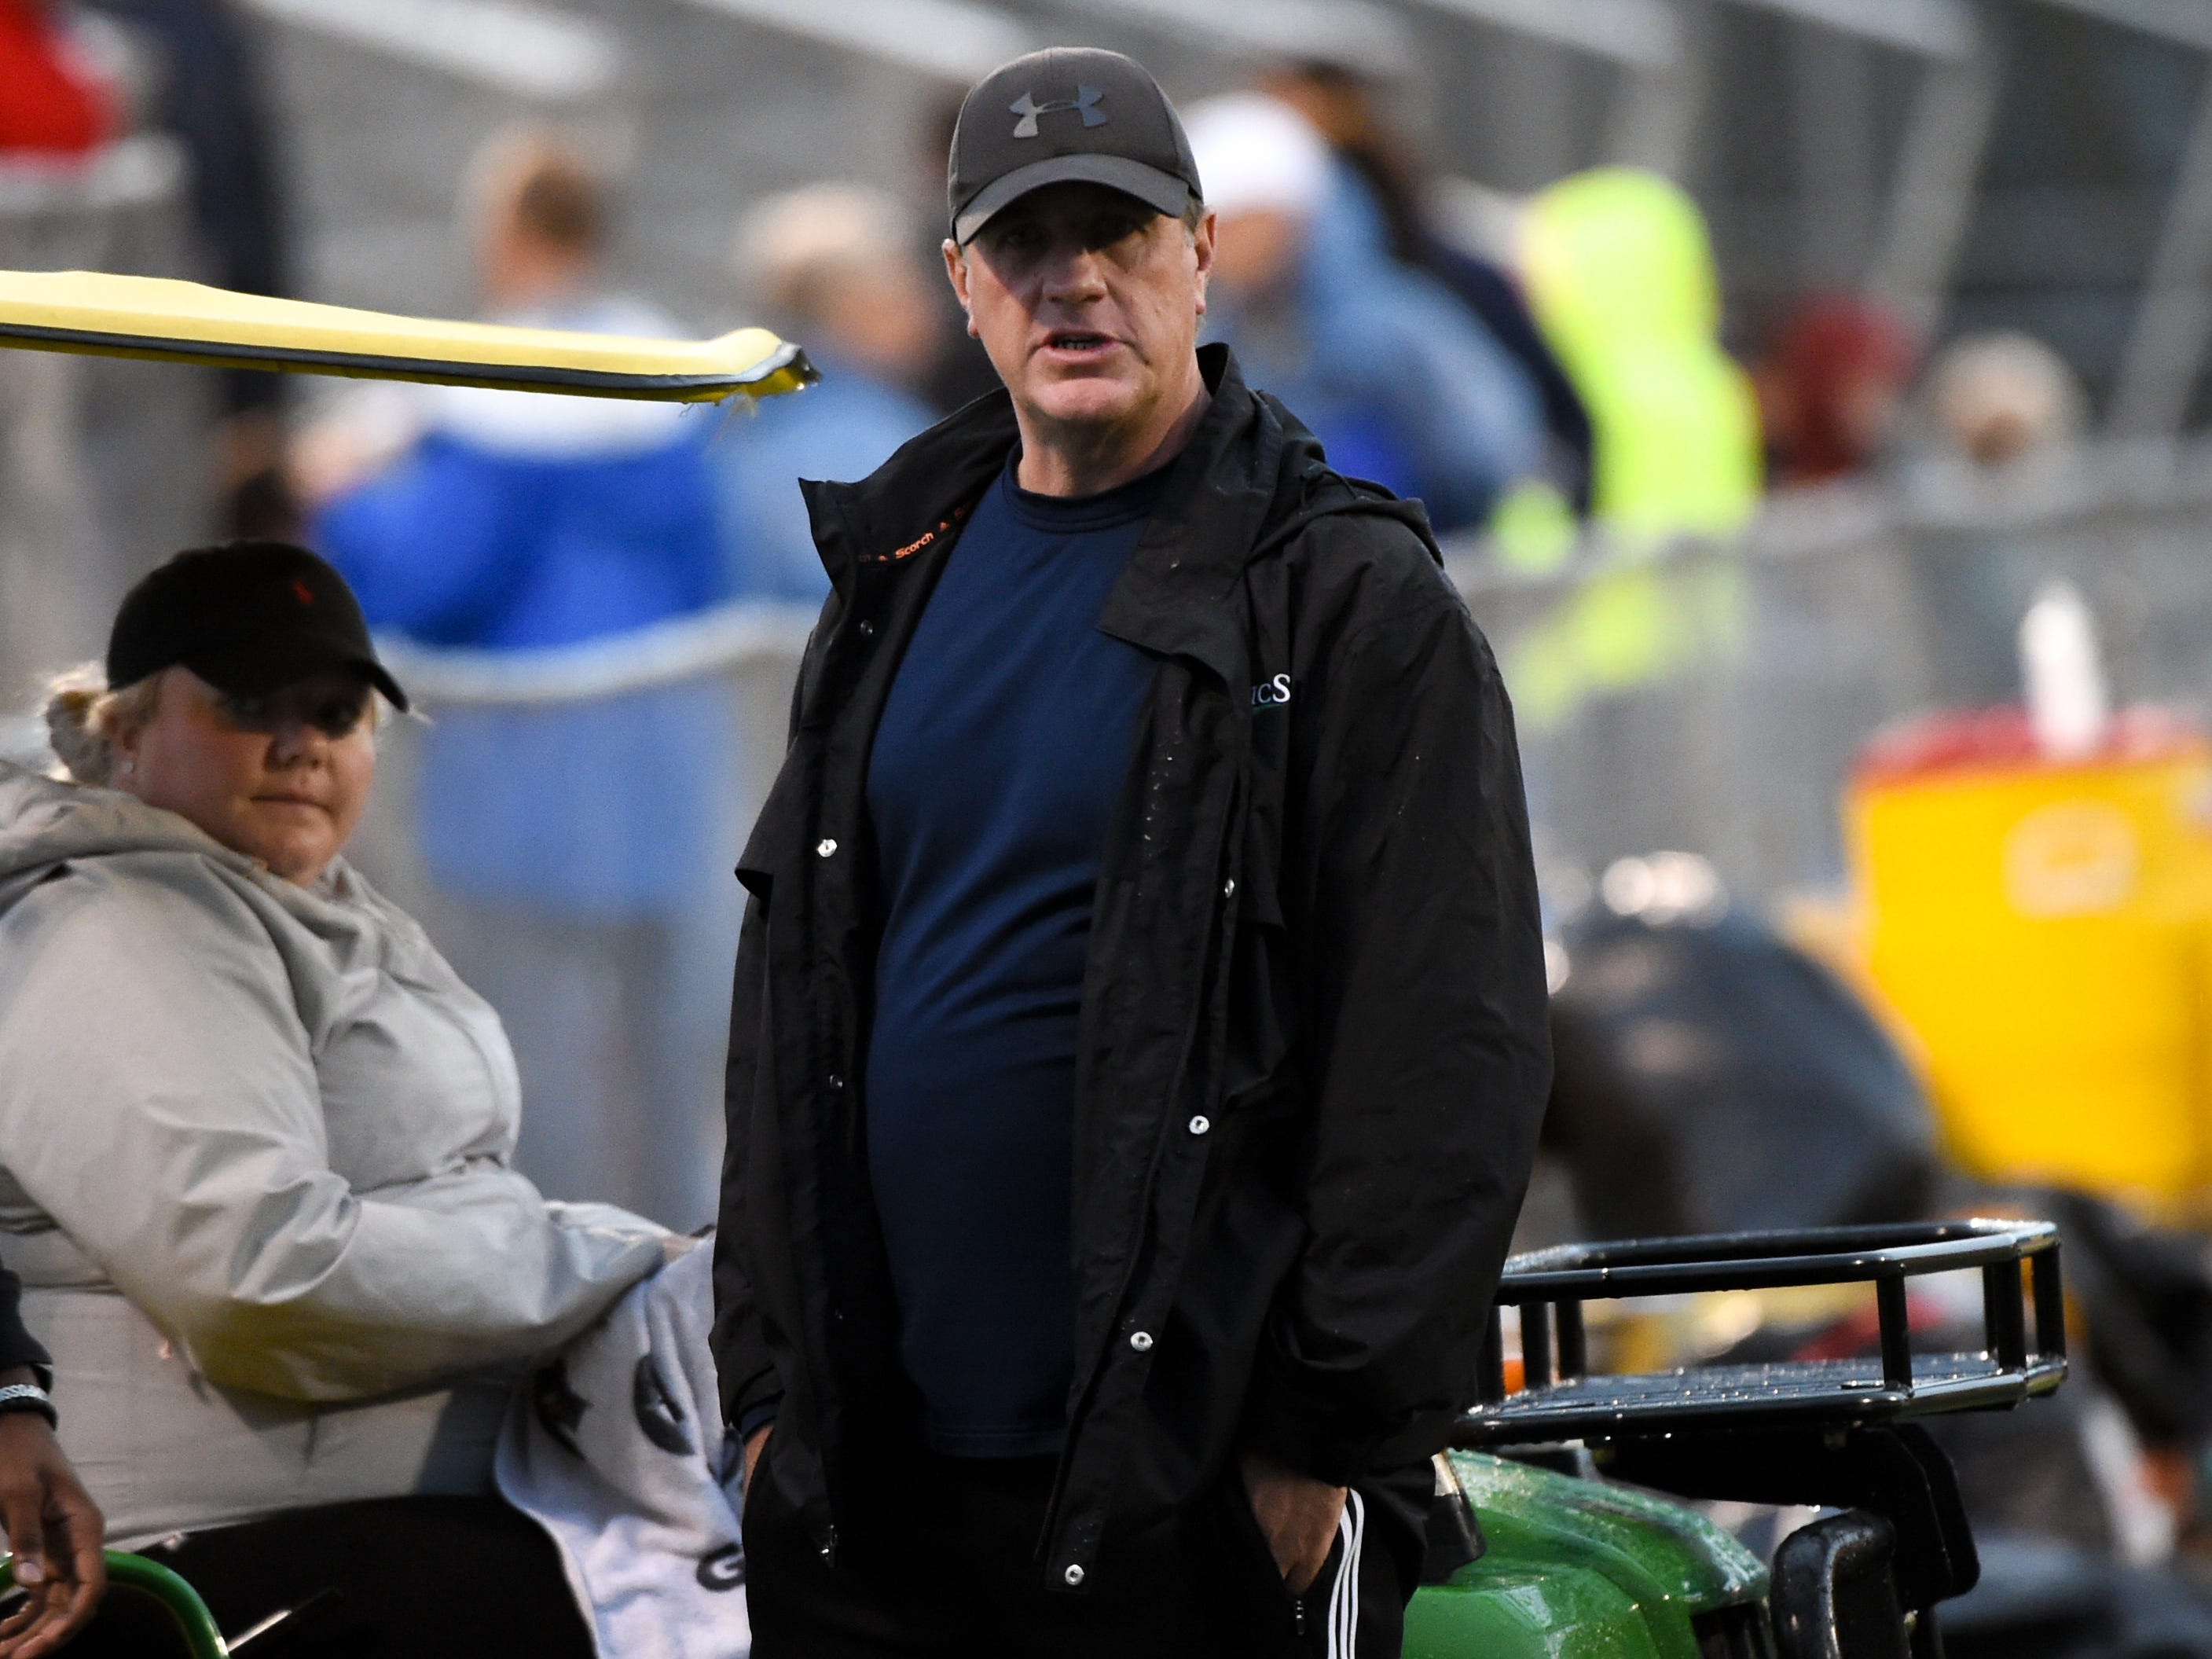 The Red Lion boys soccer coach Mike Watt showed his support during the girls soccer game between Red Lion and Dallastown, October 11, 2018. The Lady Lions beat the Wildcats 4-0.